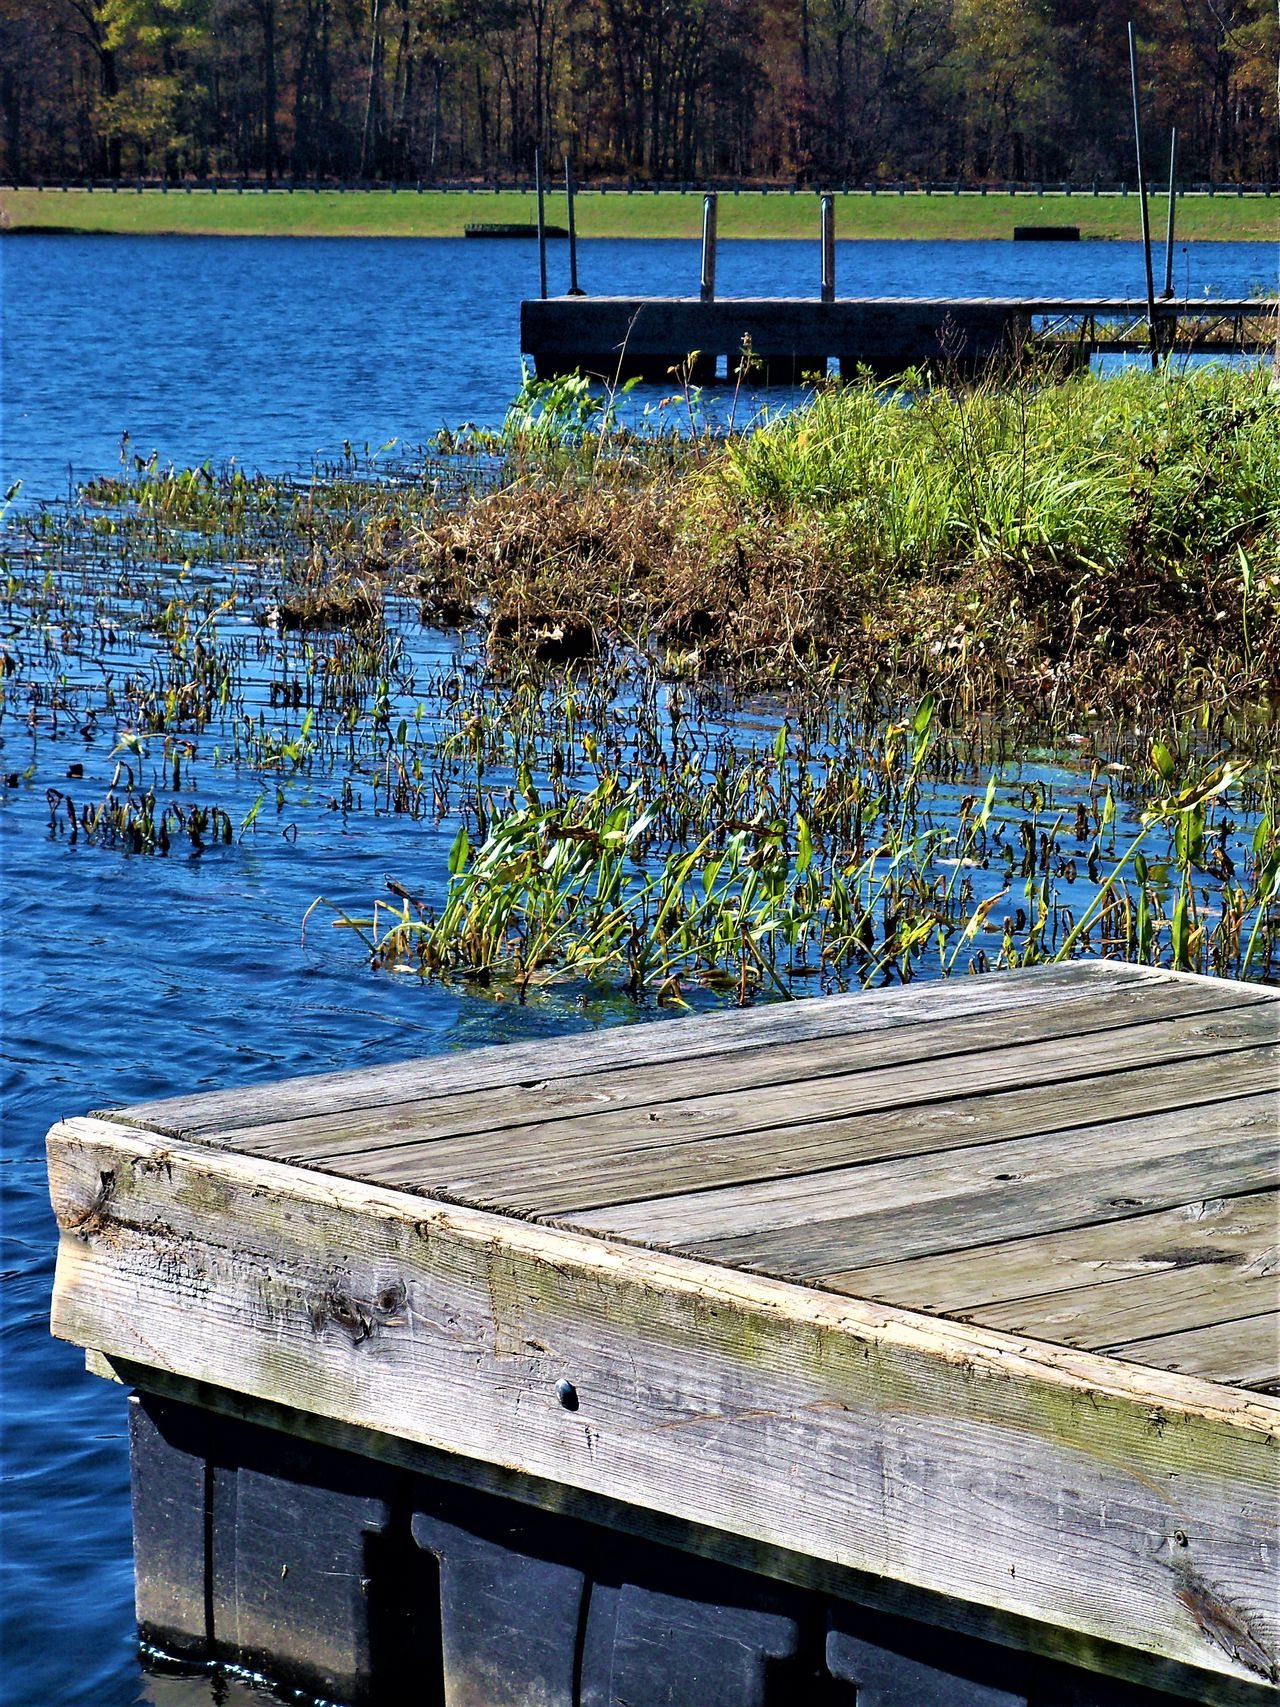 Lake Pier Beauty In Nature Day Growth Indiana Lake Lake View Lakeshore Lakeside Lakeview Nature No People Outdoors Park Pier Plant Plants Scenics Tranquility Water Water Plants Wooden Wooden Pier Woodenpier